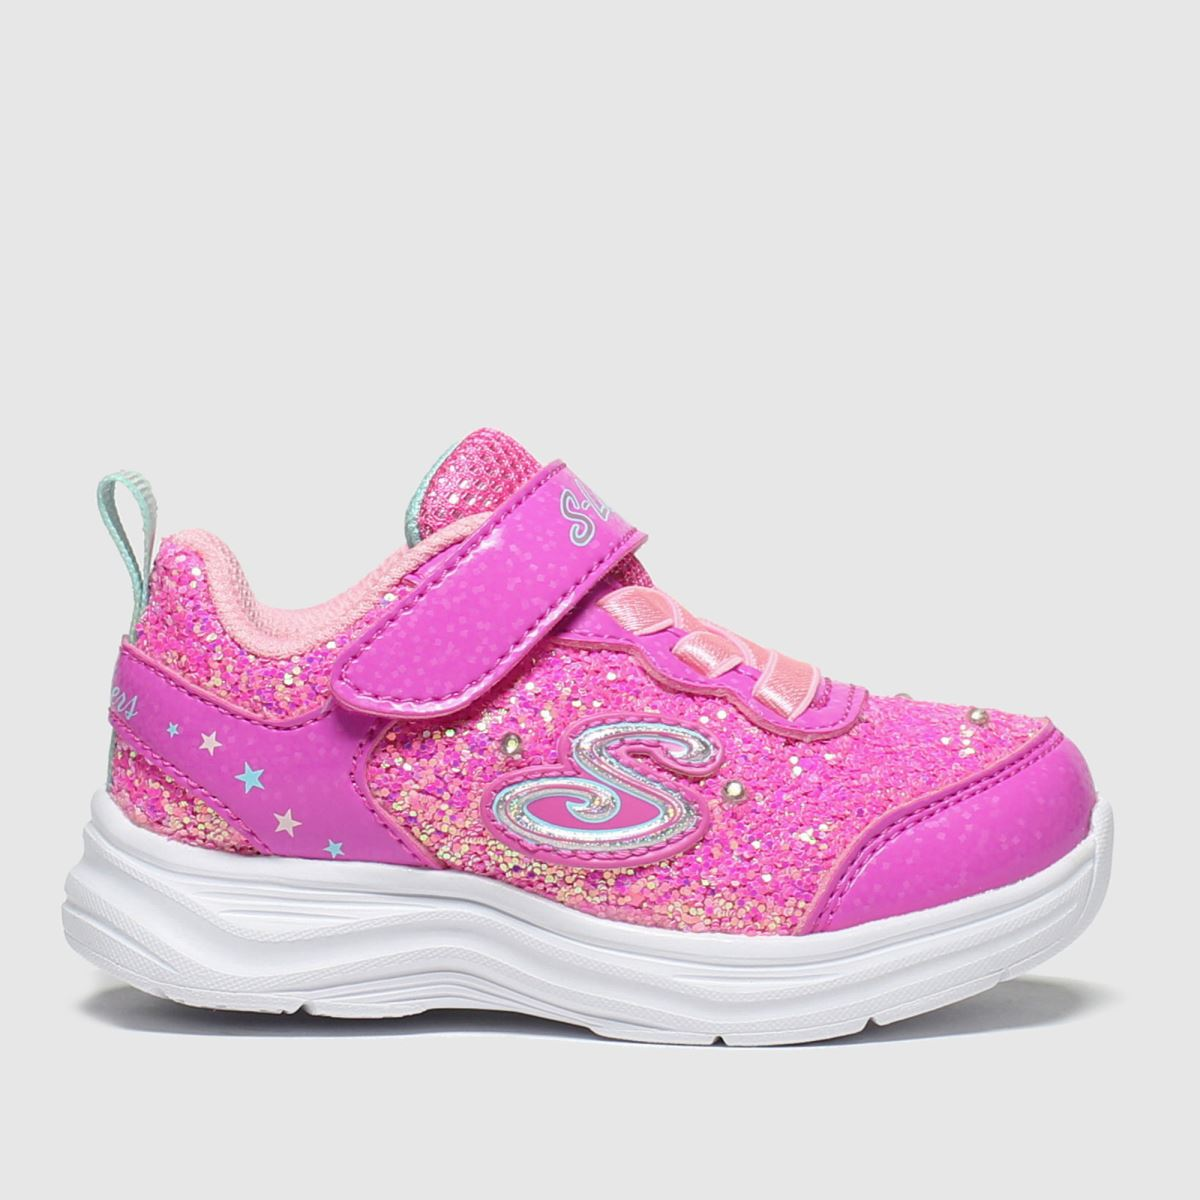 Skechers Pink Glimmer Kicks Trainers Toddler